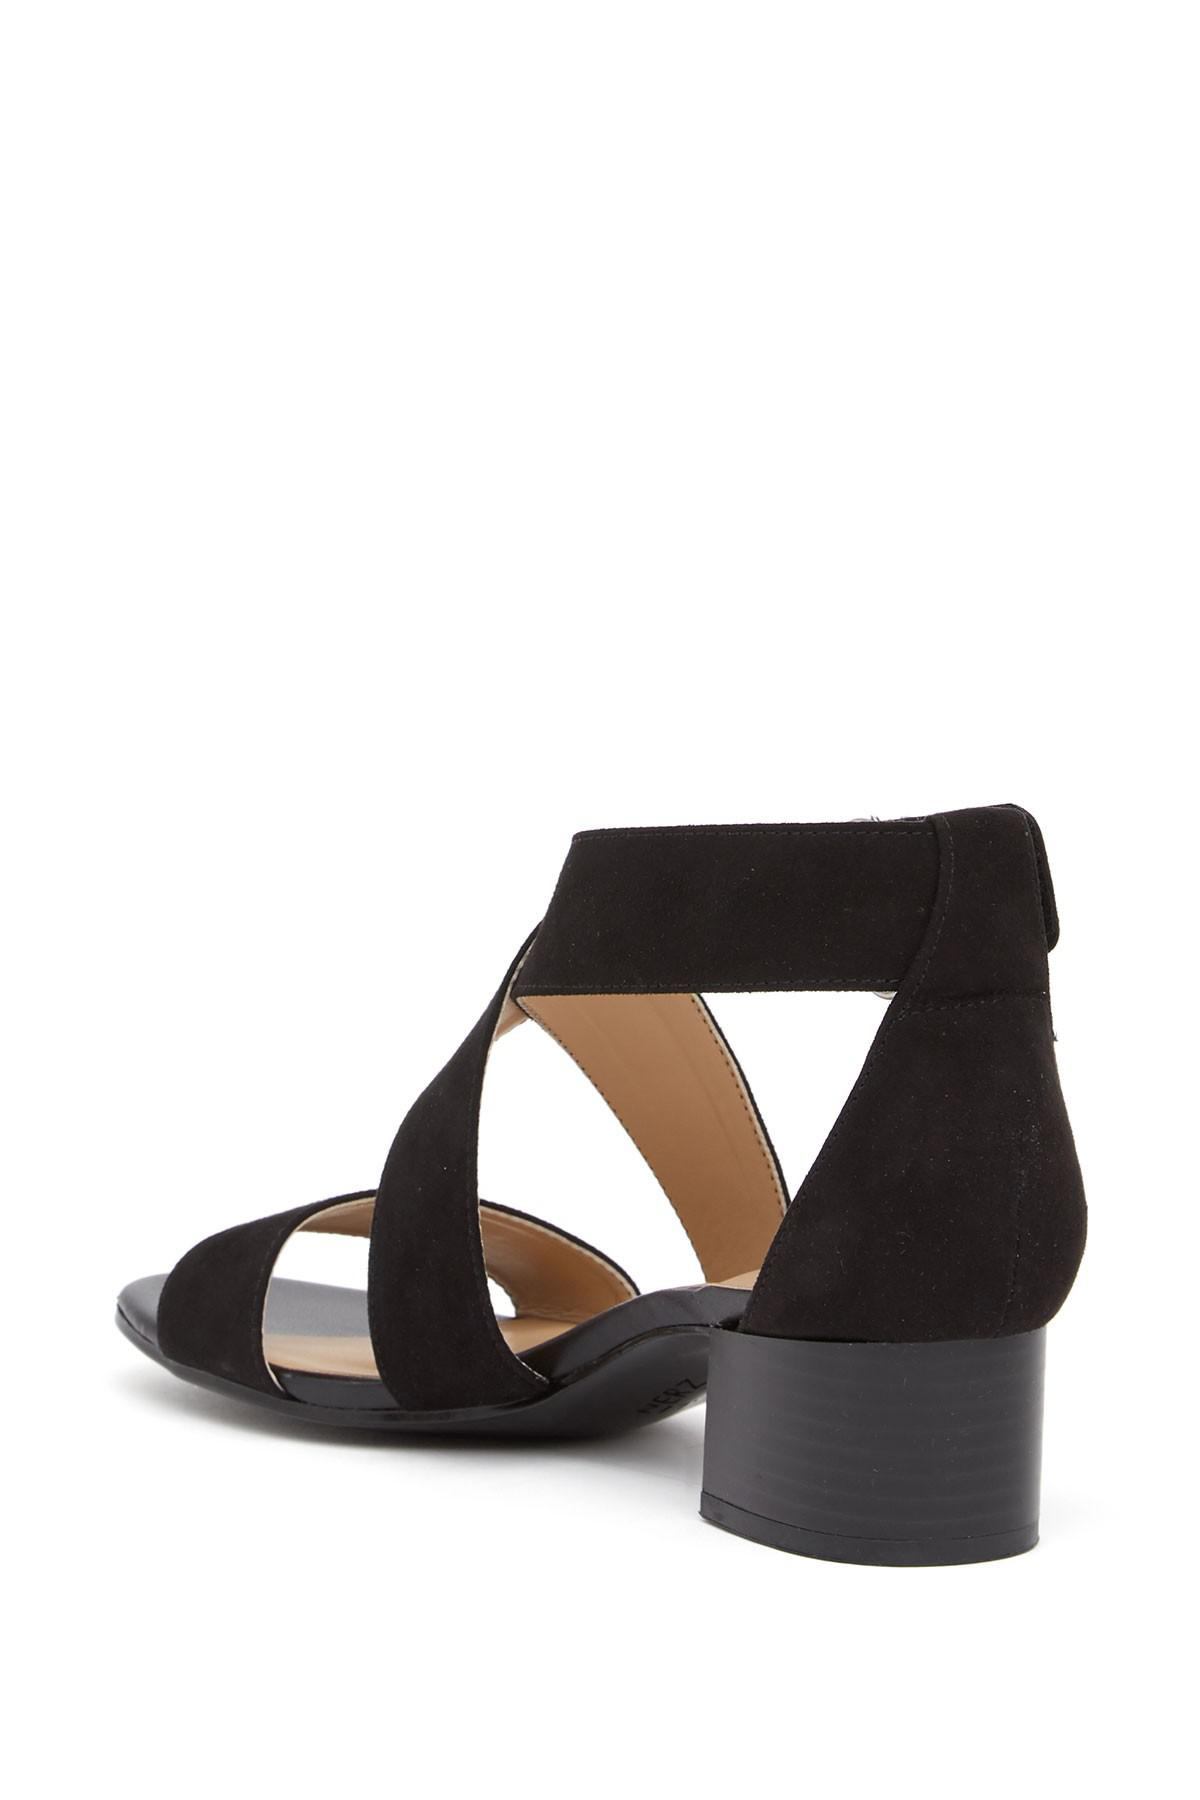 e58f0b67e92 Naturalizer - Black Adele Block Heel Sandal - Wide Width Available - Lyst.  View fullscreen